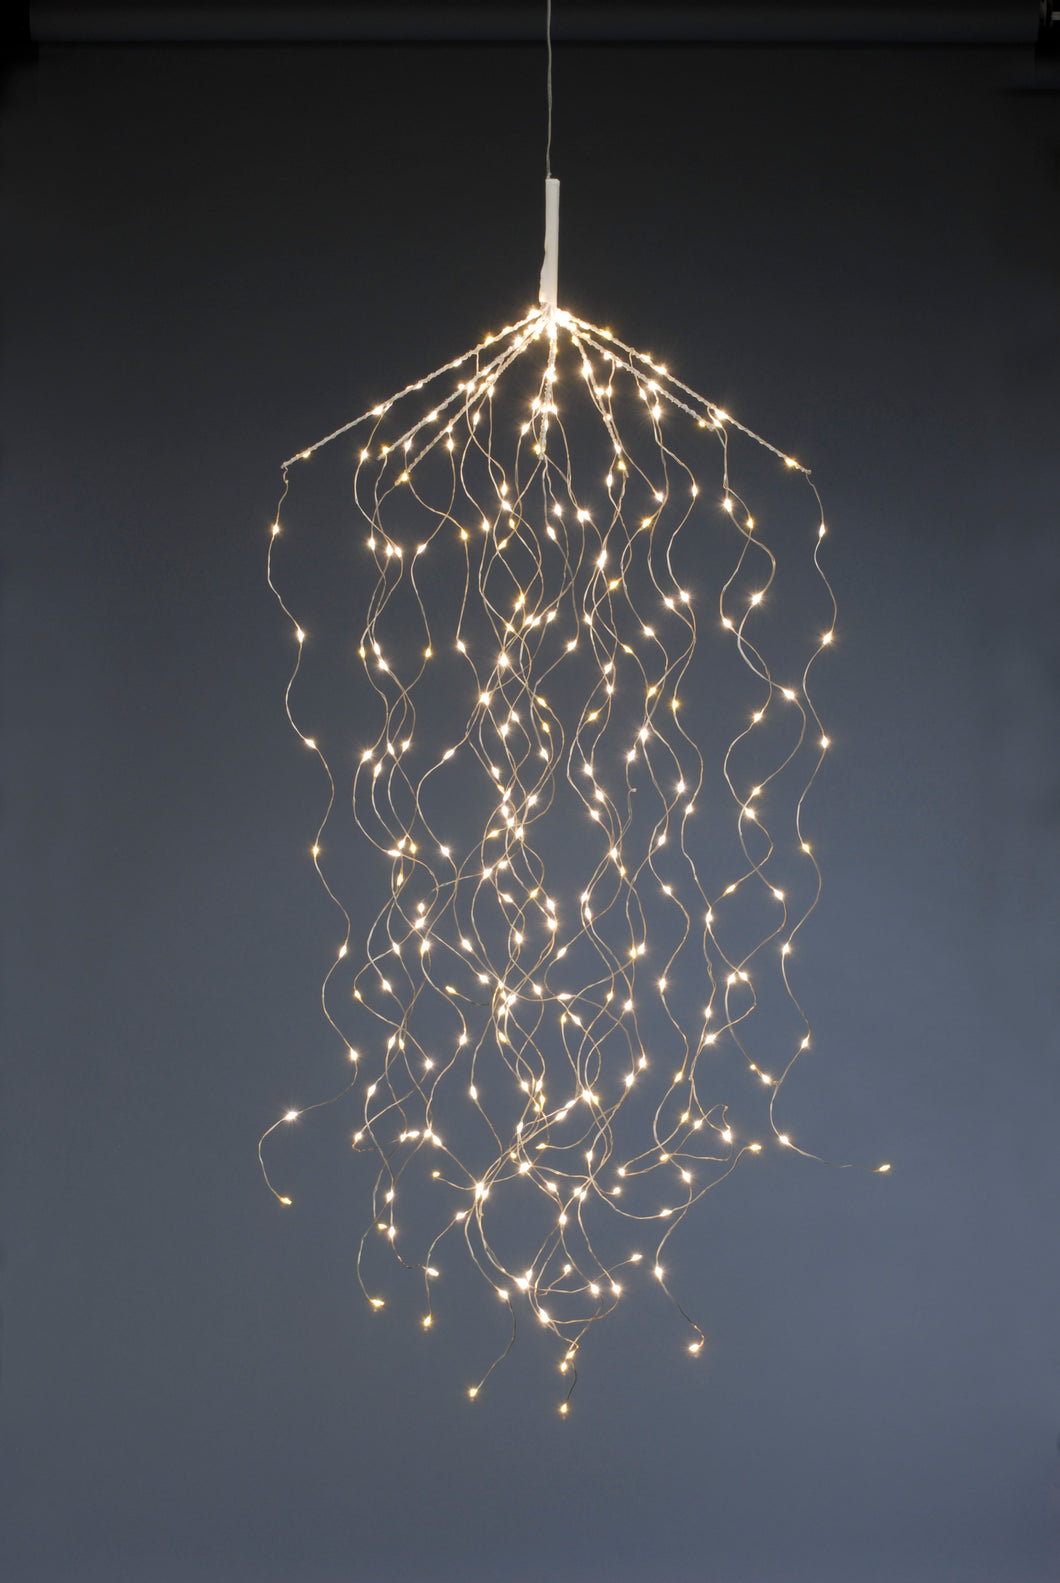 100 cm Dewdrop Waterfall Lights Warm White